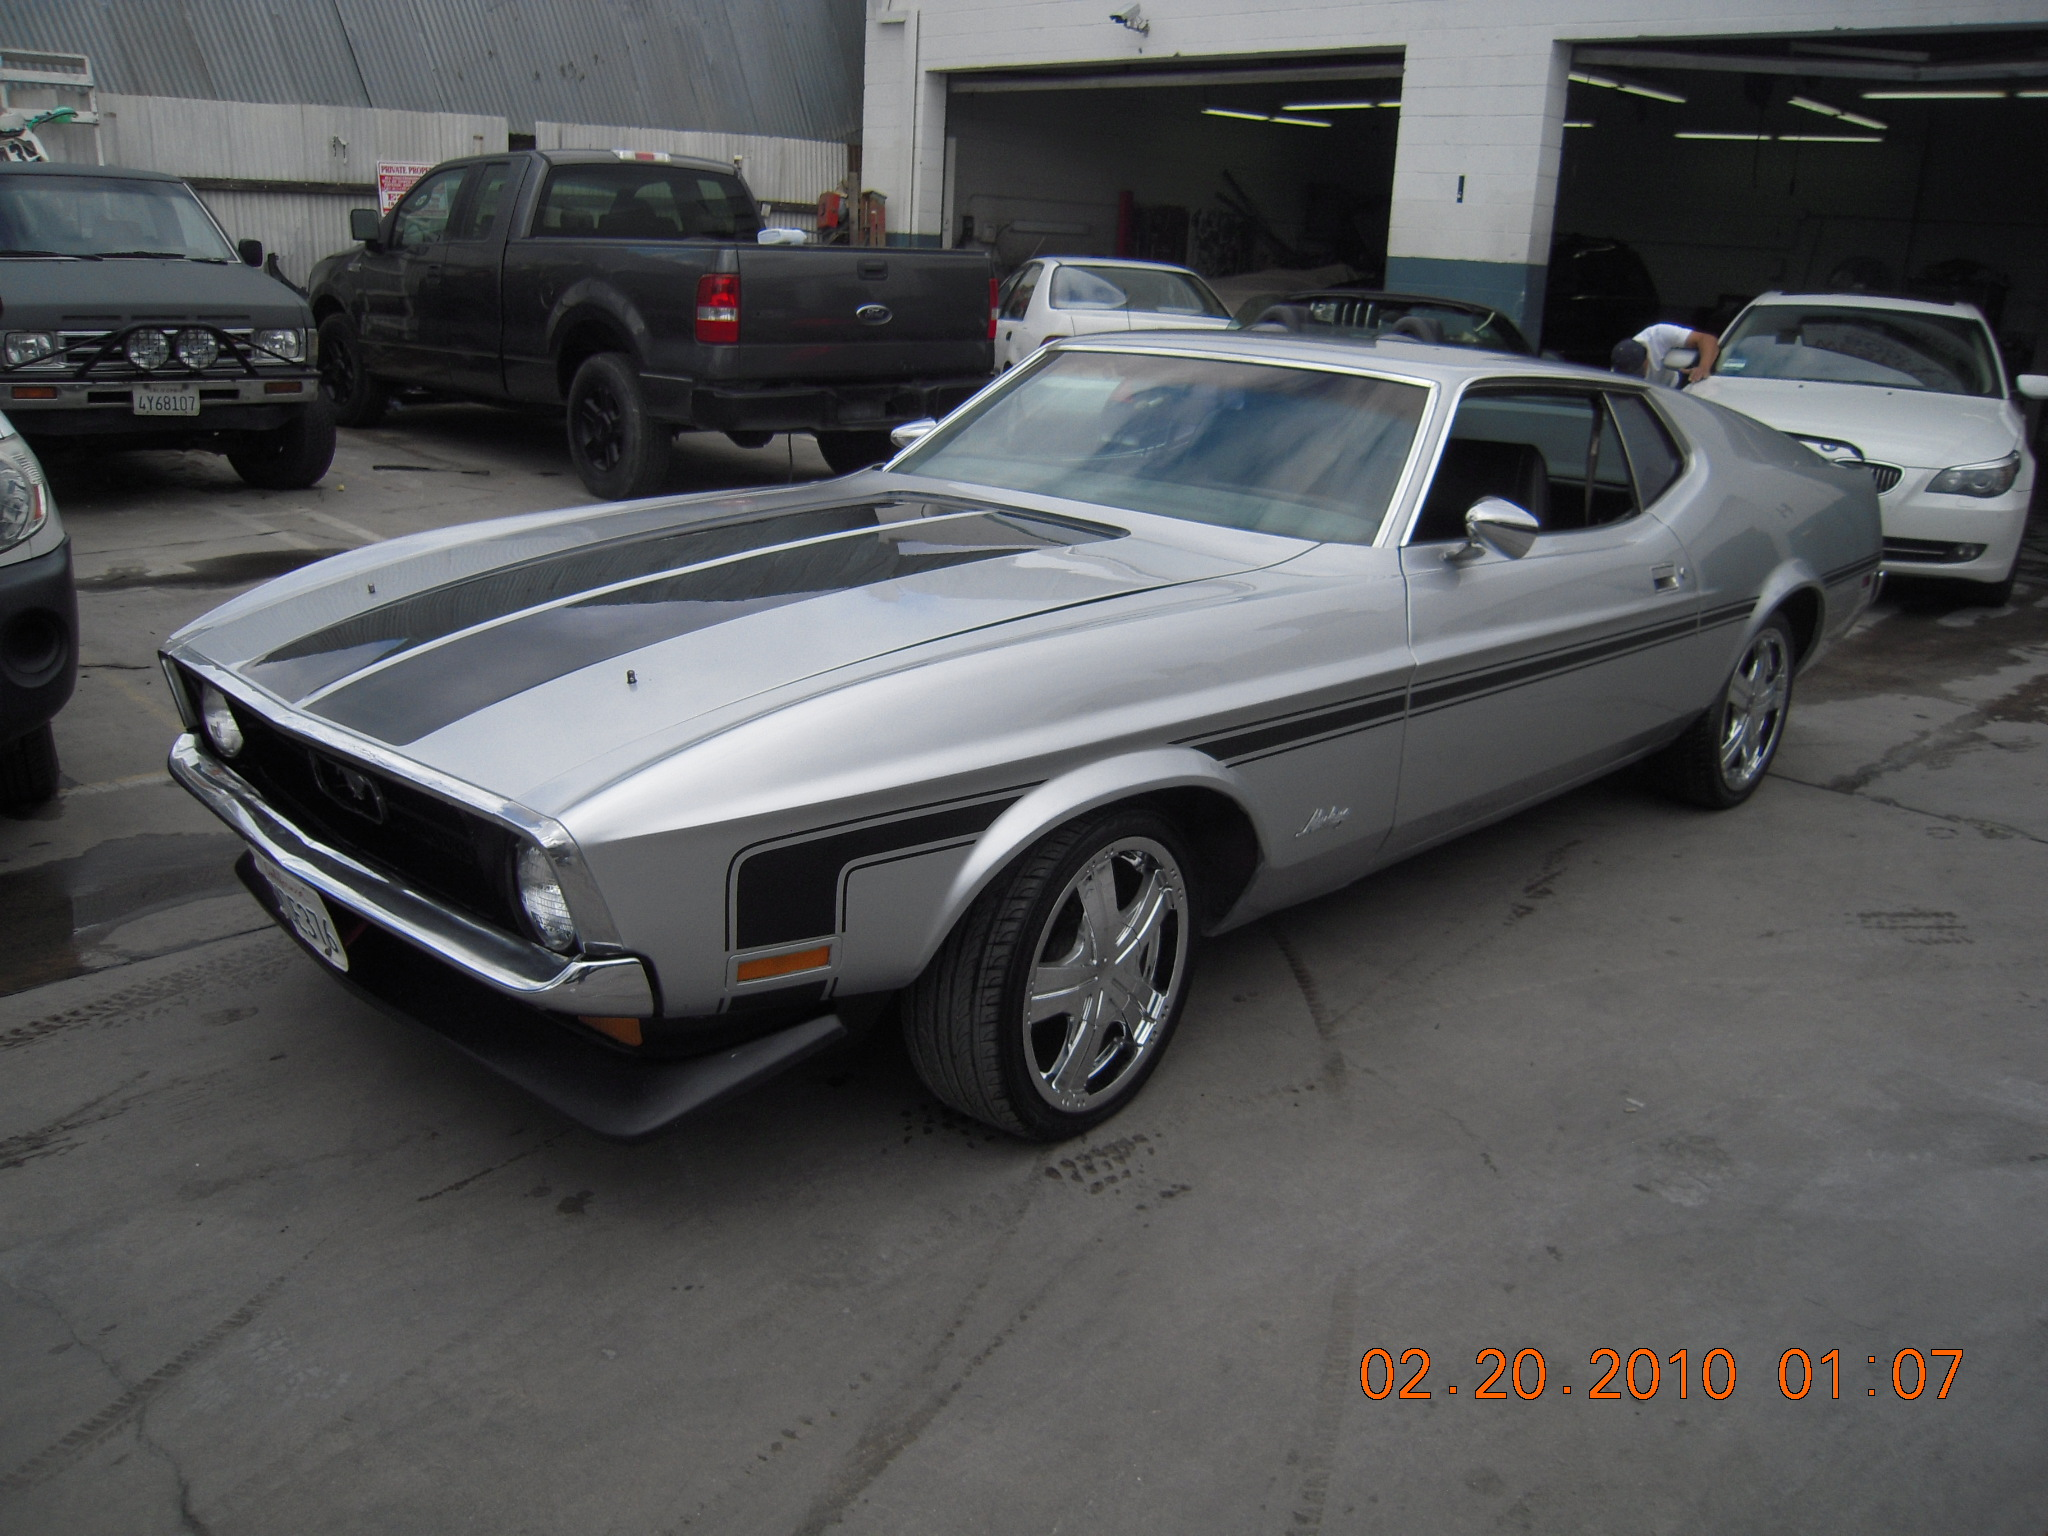 West-Coast-Body-And-Paint-1971-Mustang-Mach-1-Gray (37)